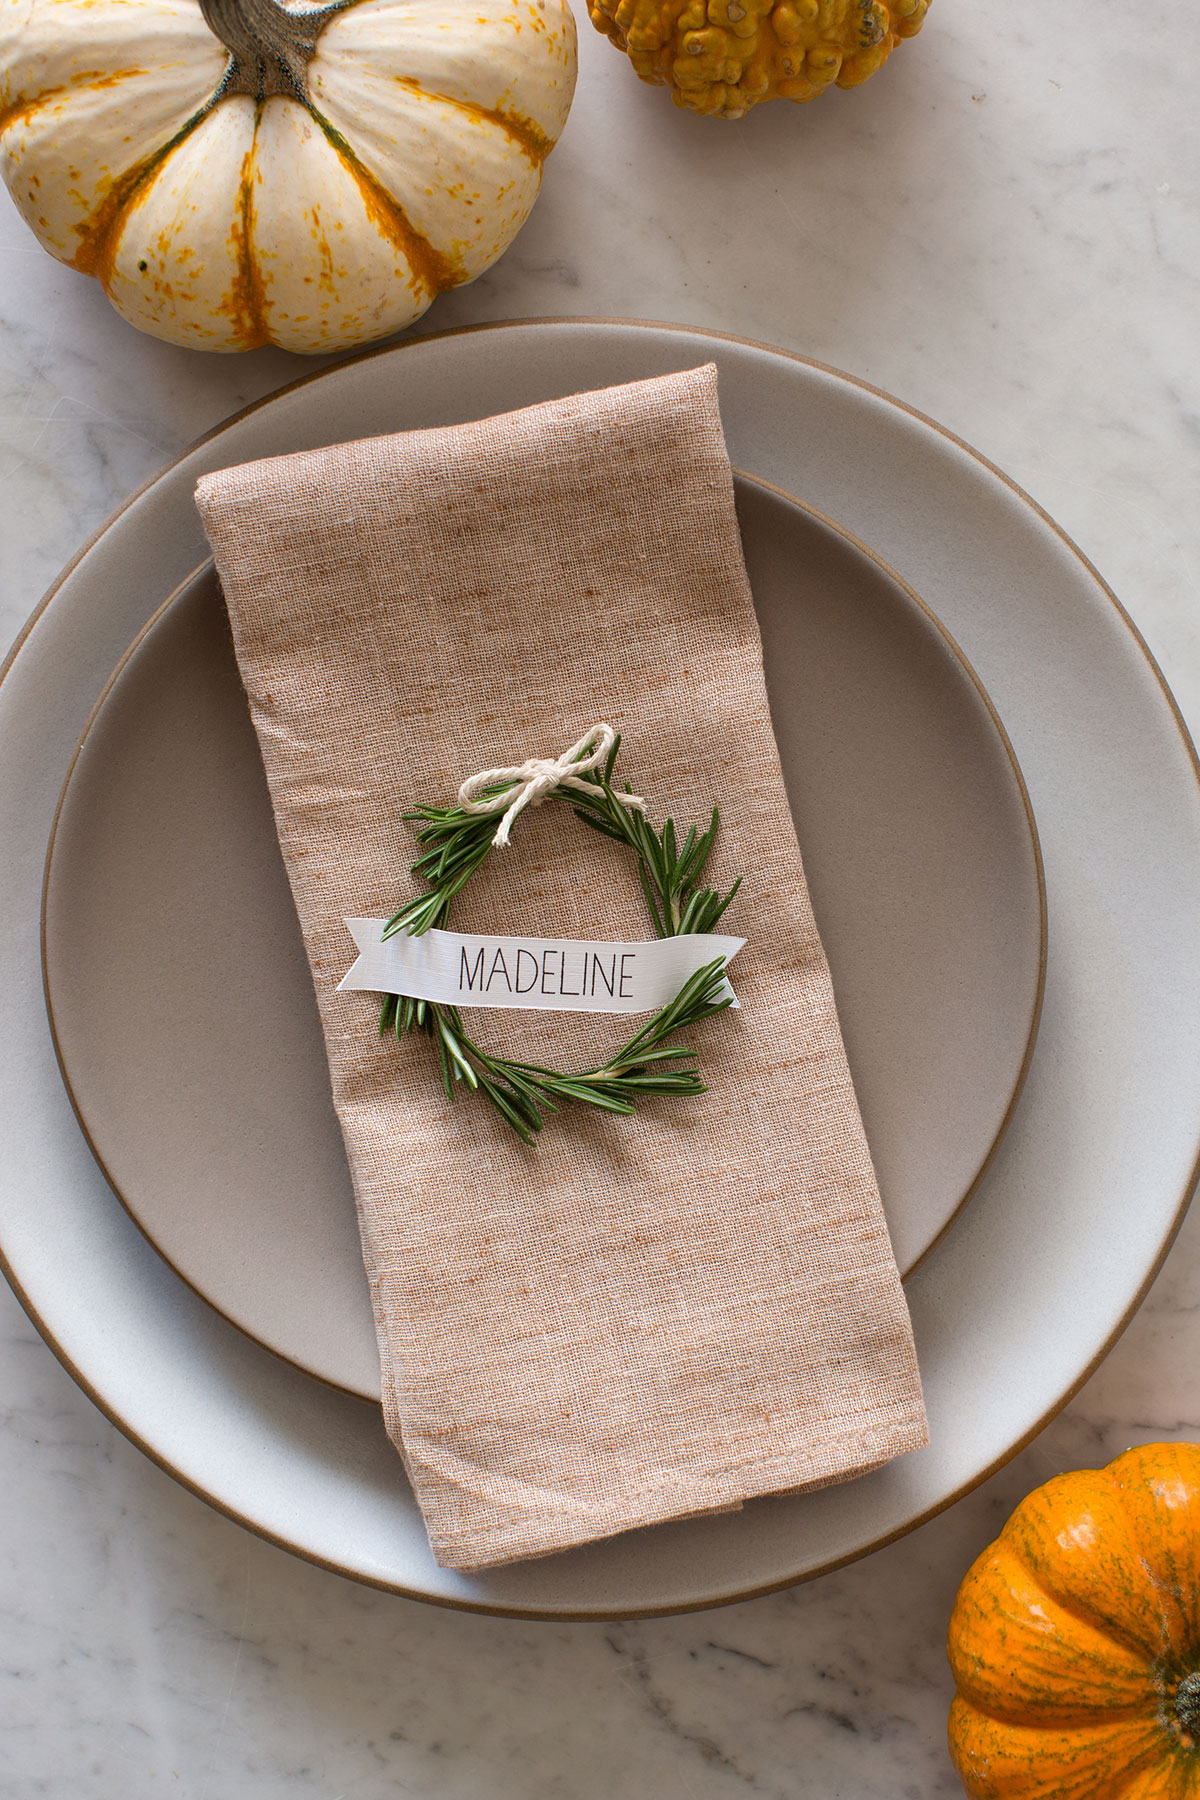 Thanksgiving Decorating Ideas Your Guests Will Love 1